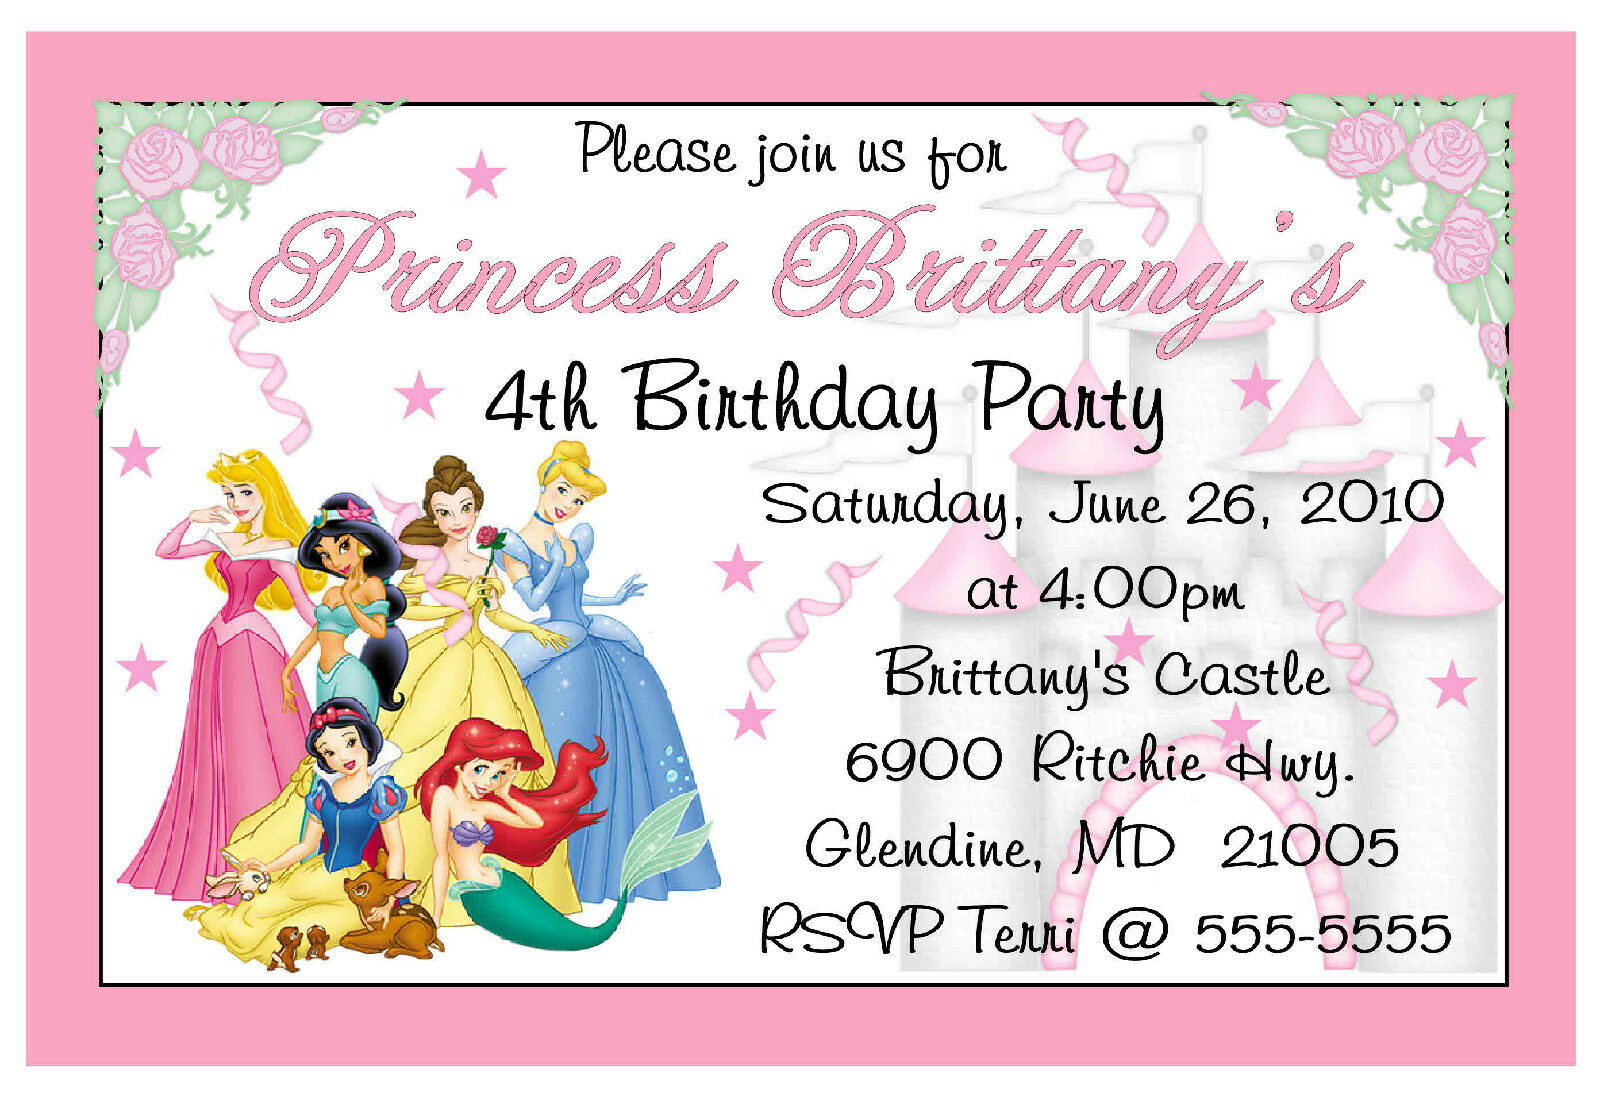 DISNEY PRINCESS CUSTOM BIRTHDAY INVITATIONS - $6.99 | PicClick